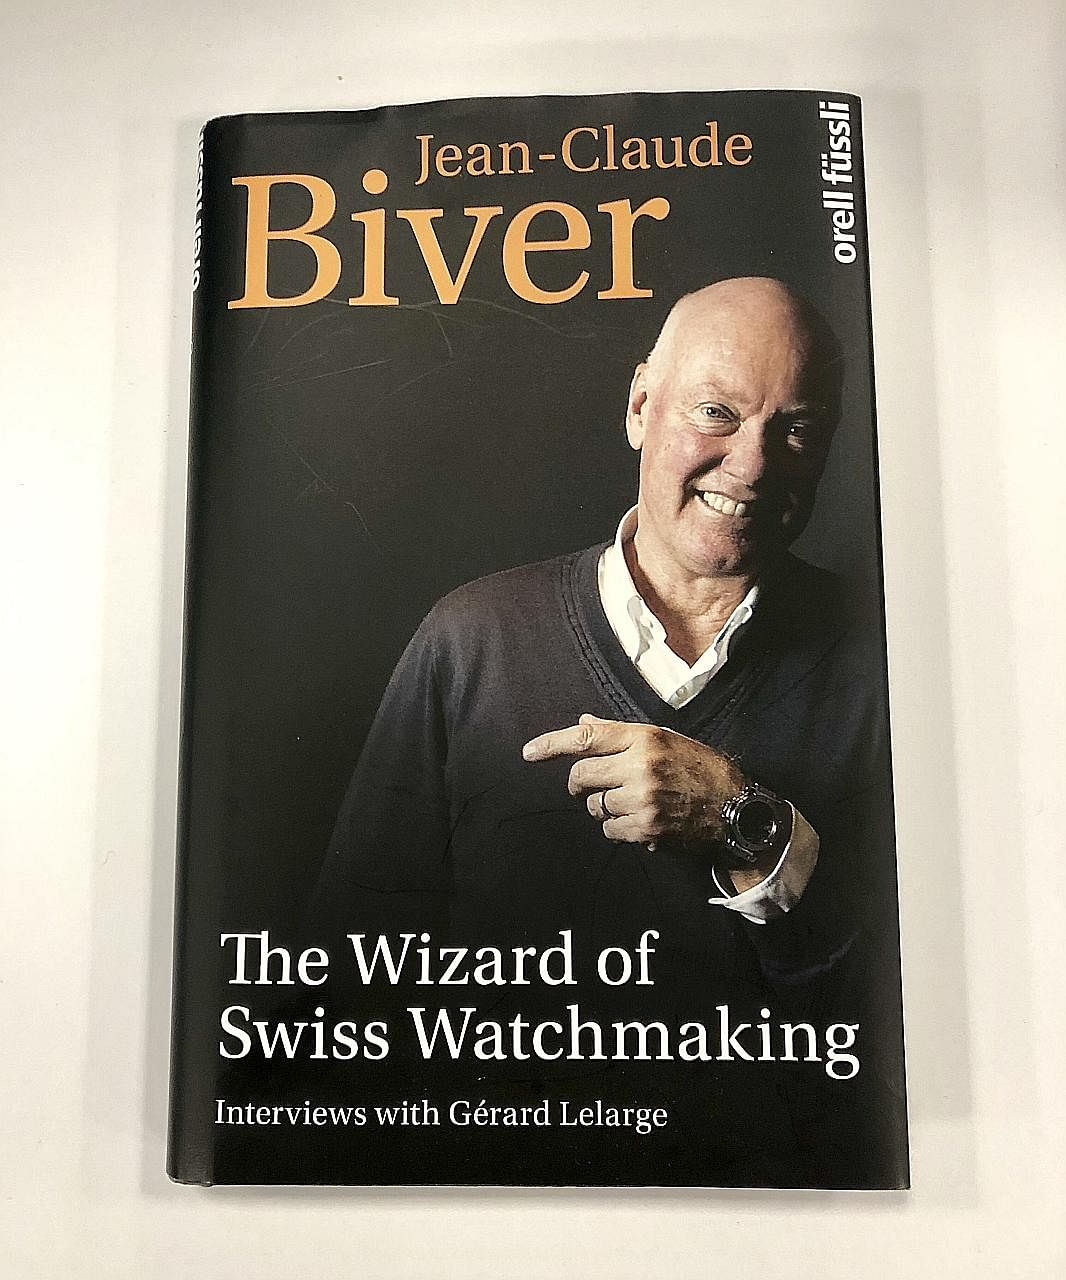 Mr Jean-Claude Biver (left) turned watch brands Blancpain, Omega and Hublot around, and also mentored top guys in the watchmaking world, including Mr Jean-Frederic Dufour of Rolex; and Mr Ricardo Guadalupe of Hublot. His career is chronicled in The W